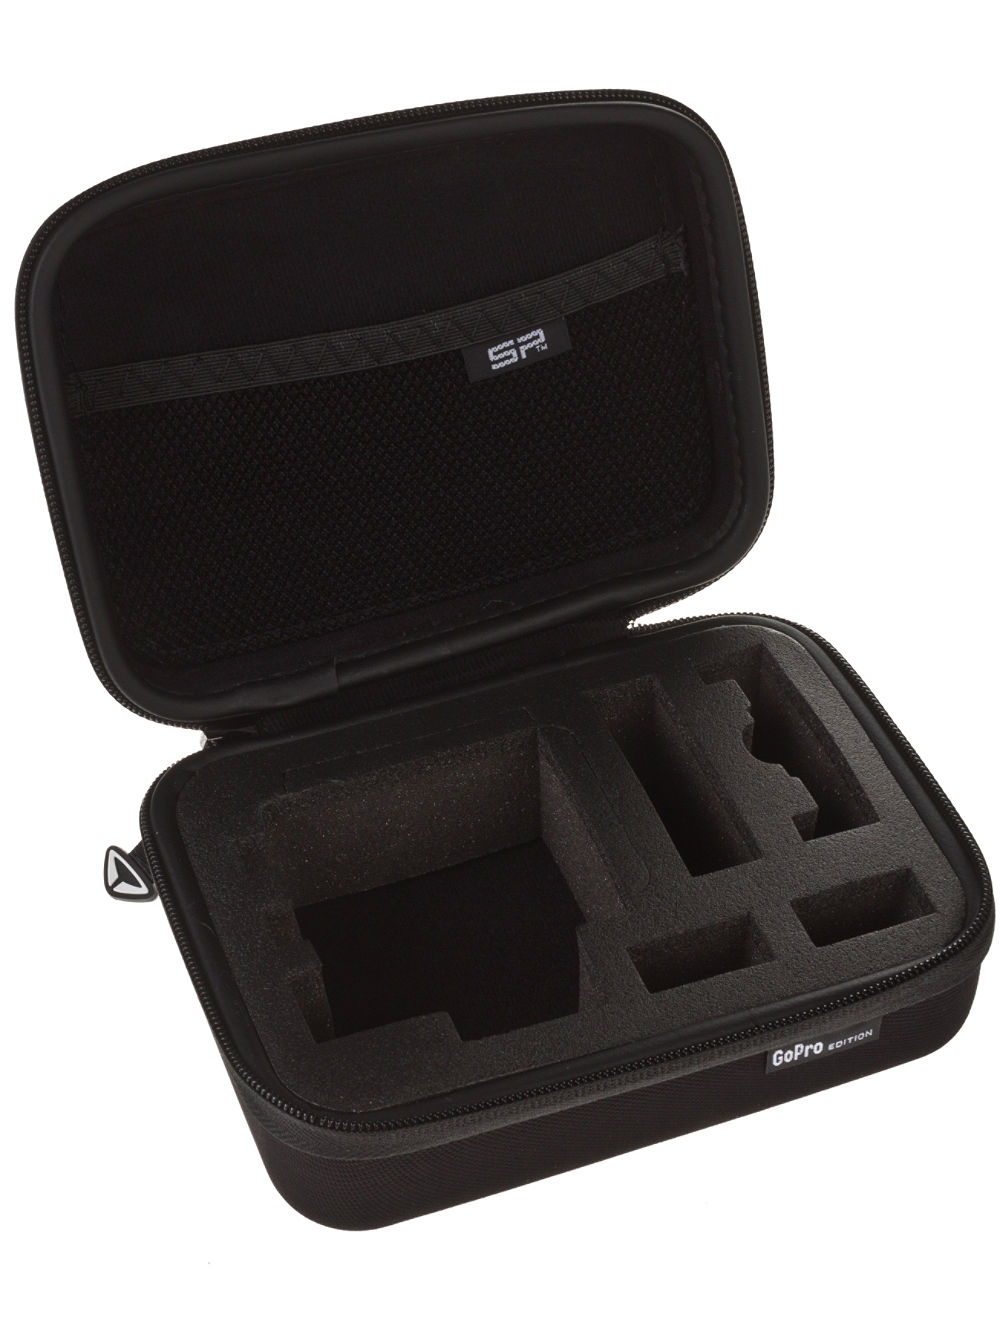 SP Gadgets Sp Pov Case 3.0 Xs Gopro-Edition Black